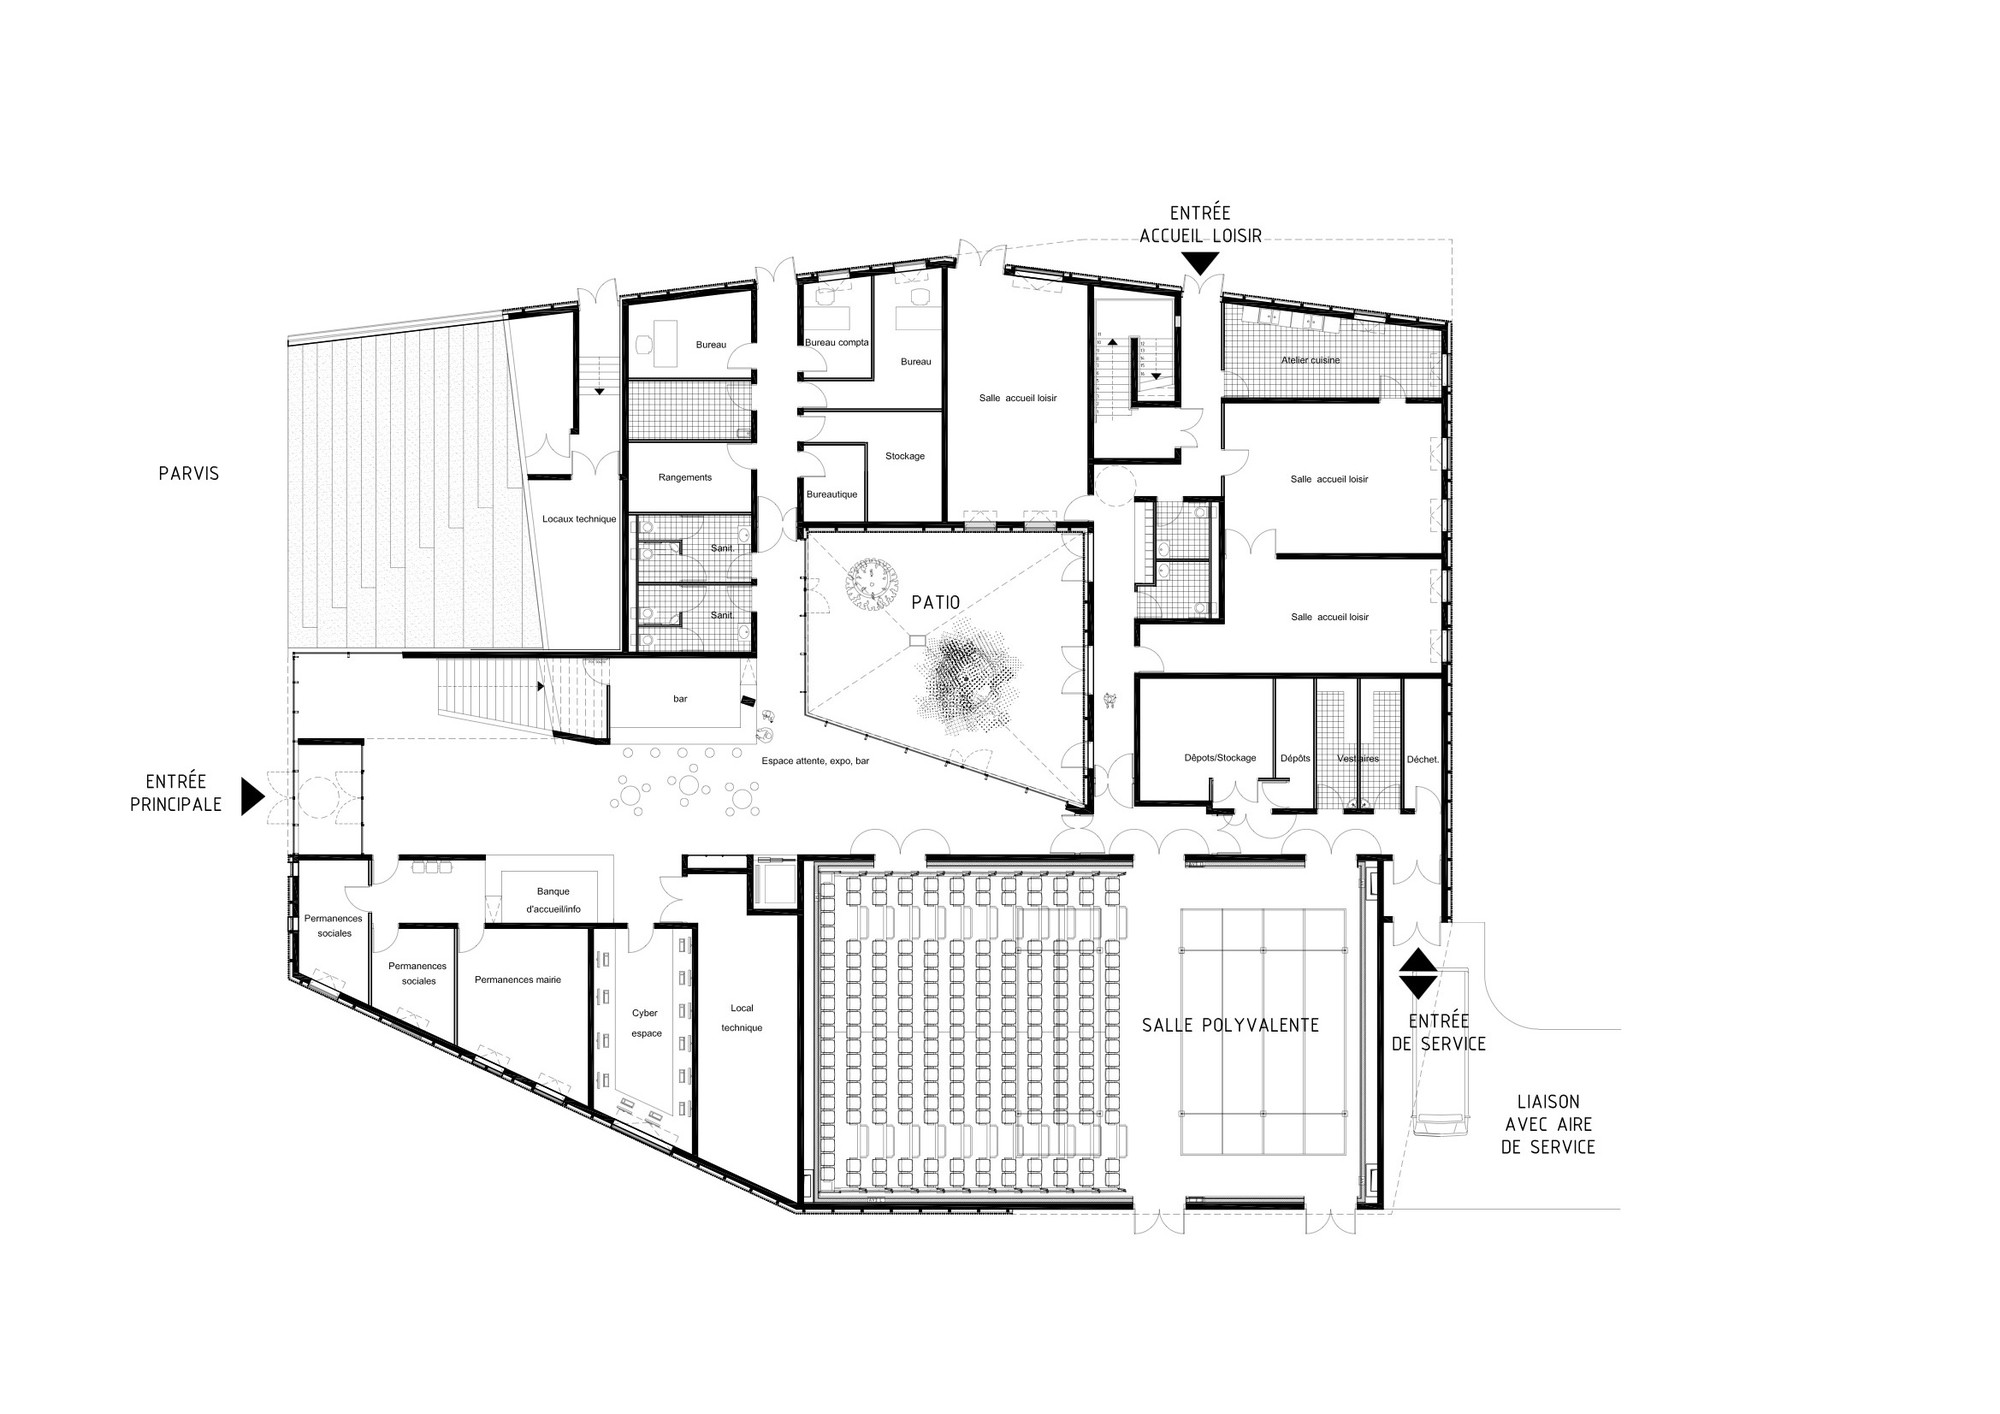 Small Modular Homes Floor Plans 245030 likewise Buttonwood Split in addition 5189a5f1b3fc4b6e29000031 Coffee House Light 4 Space Floor Plan besides Homemade Vertical Wind Turbine Plans furthermore G Shaped Kitchen Layouts. on modular plans